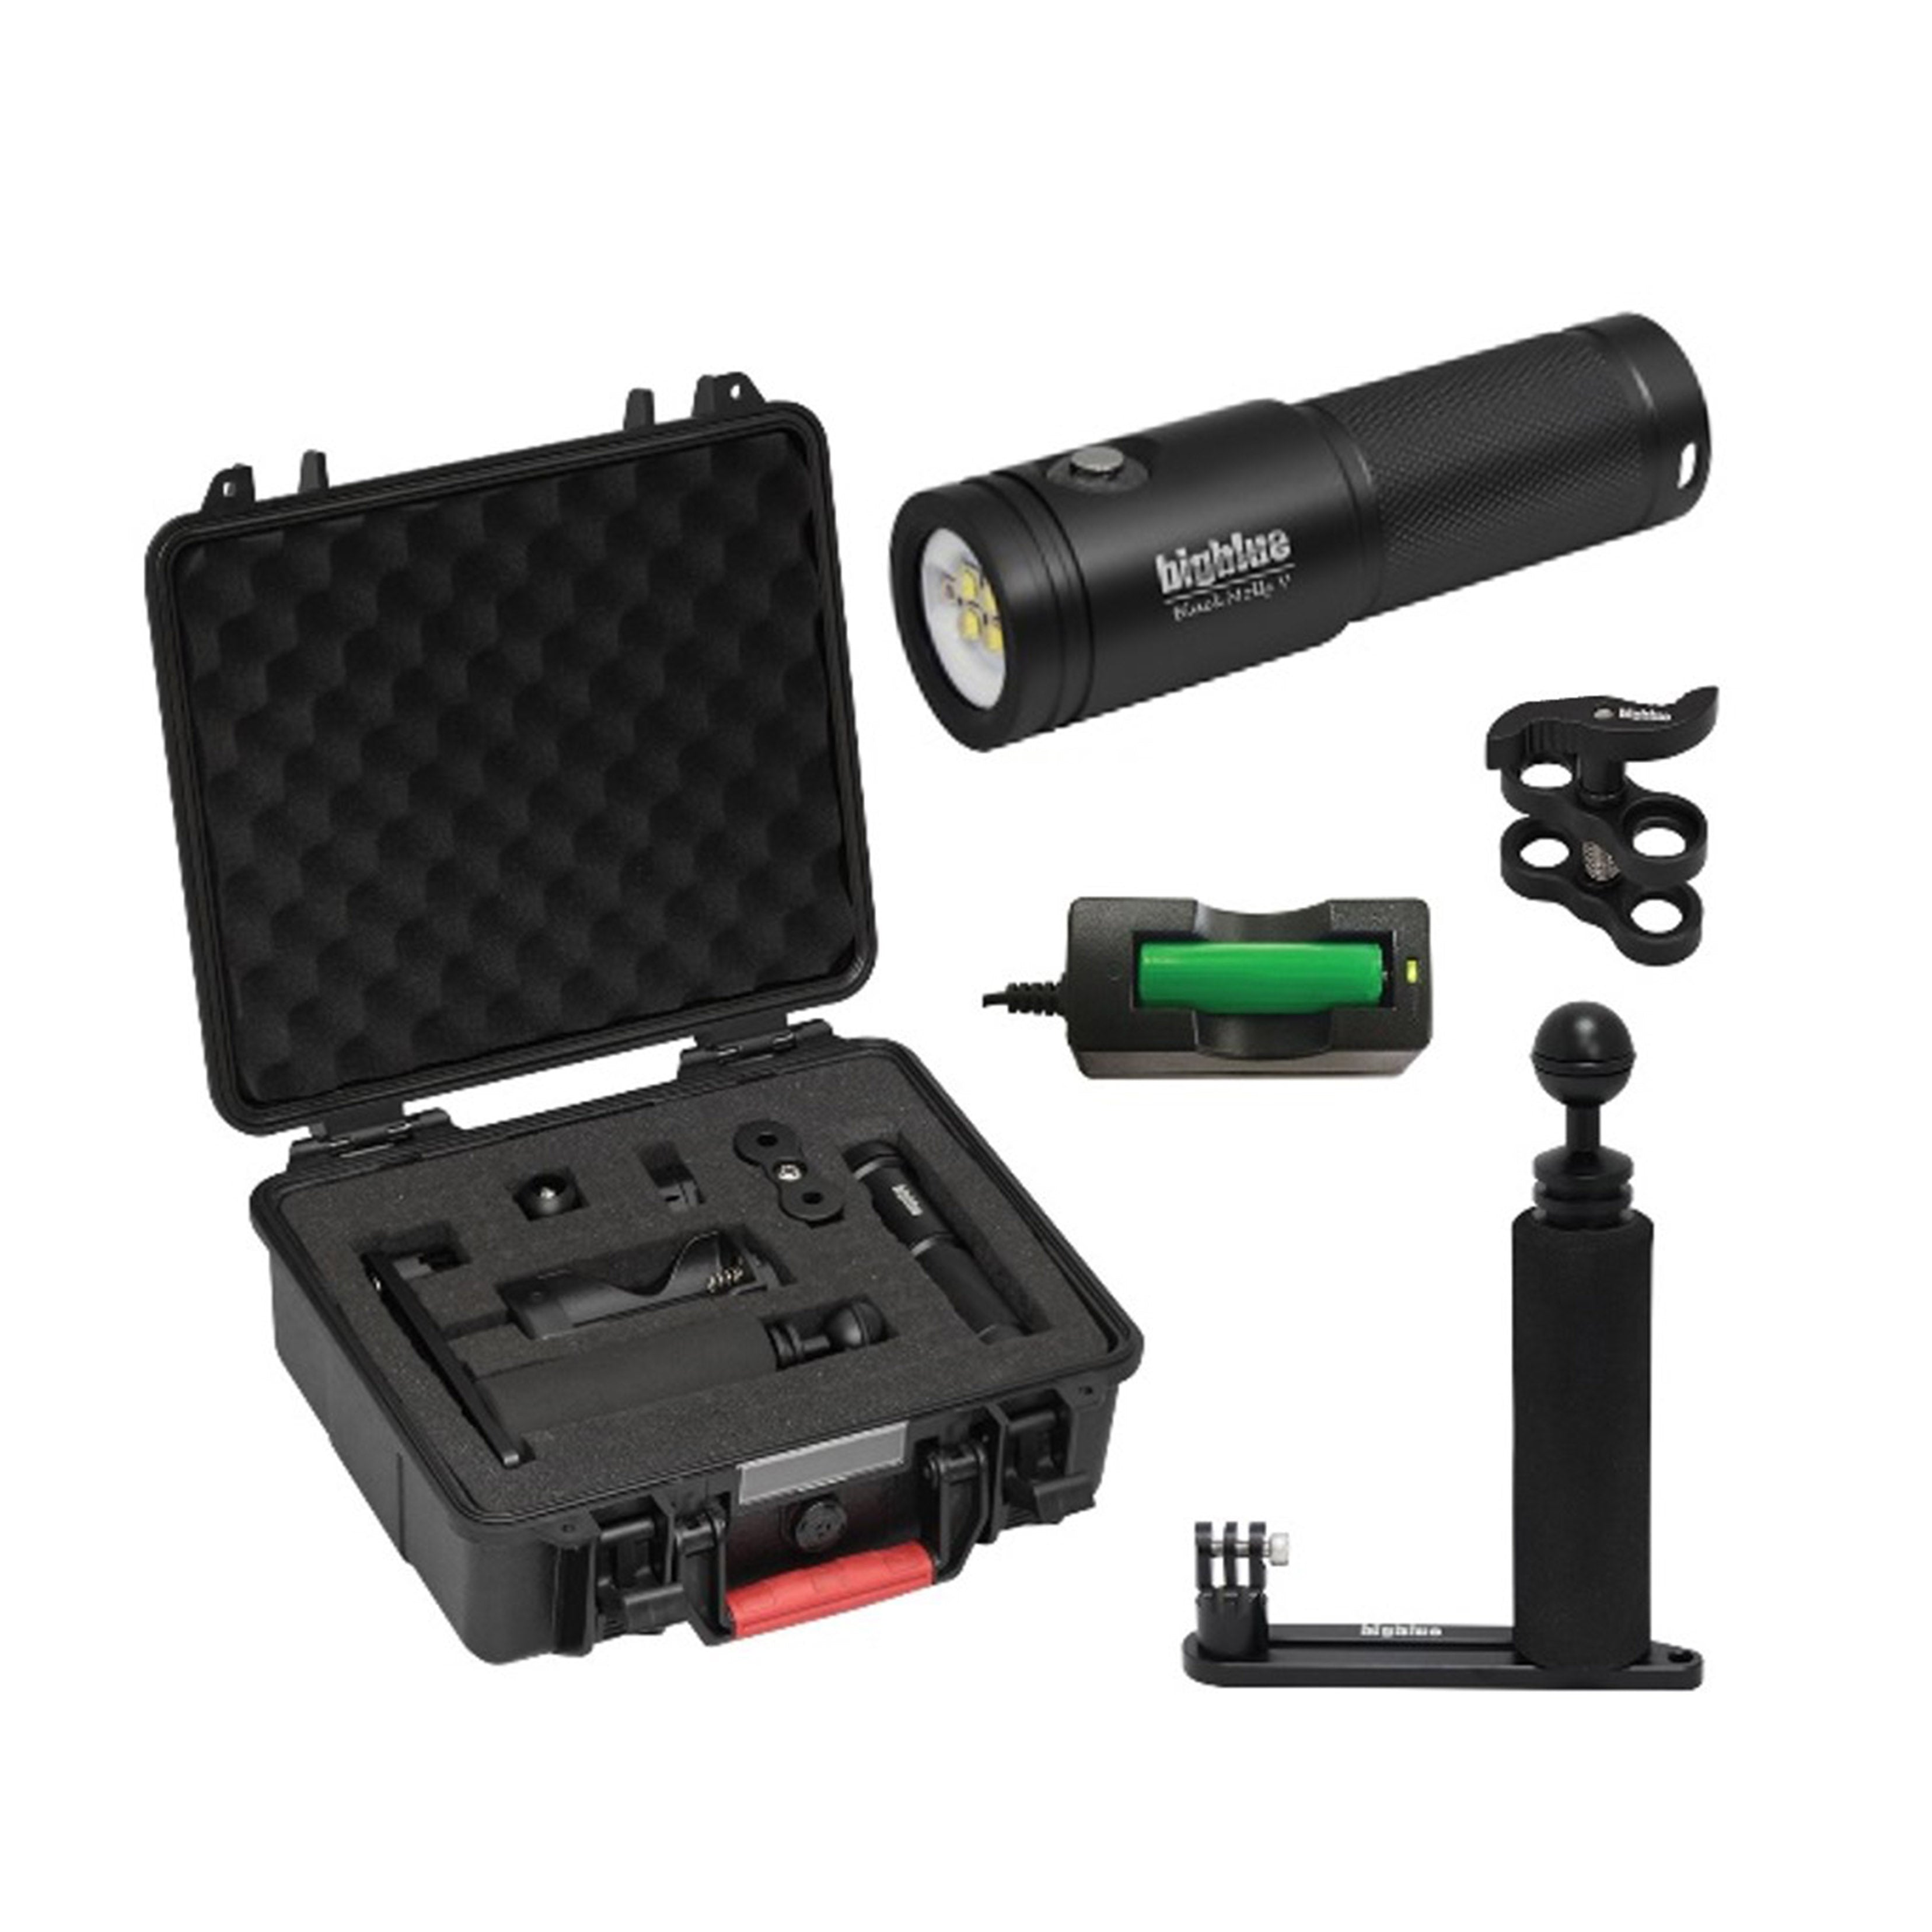 2600LUMENS LIGHT FULL SET